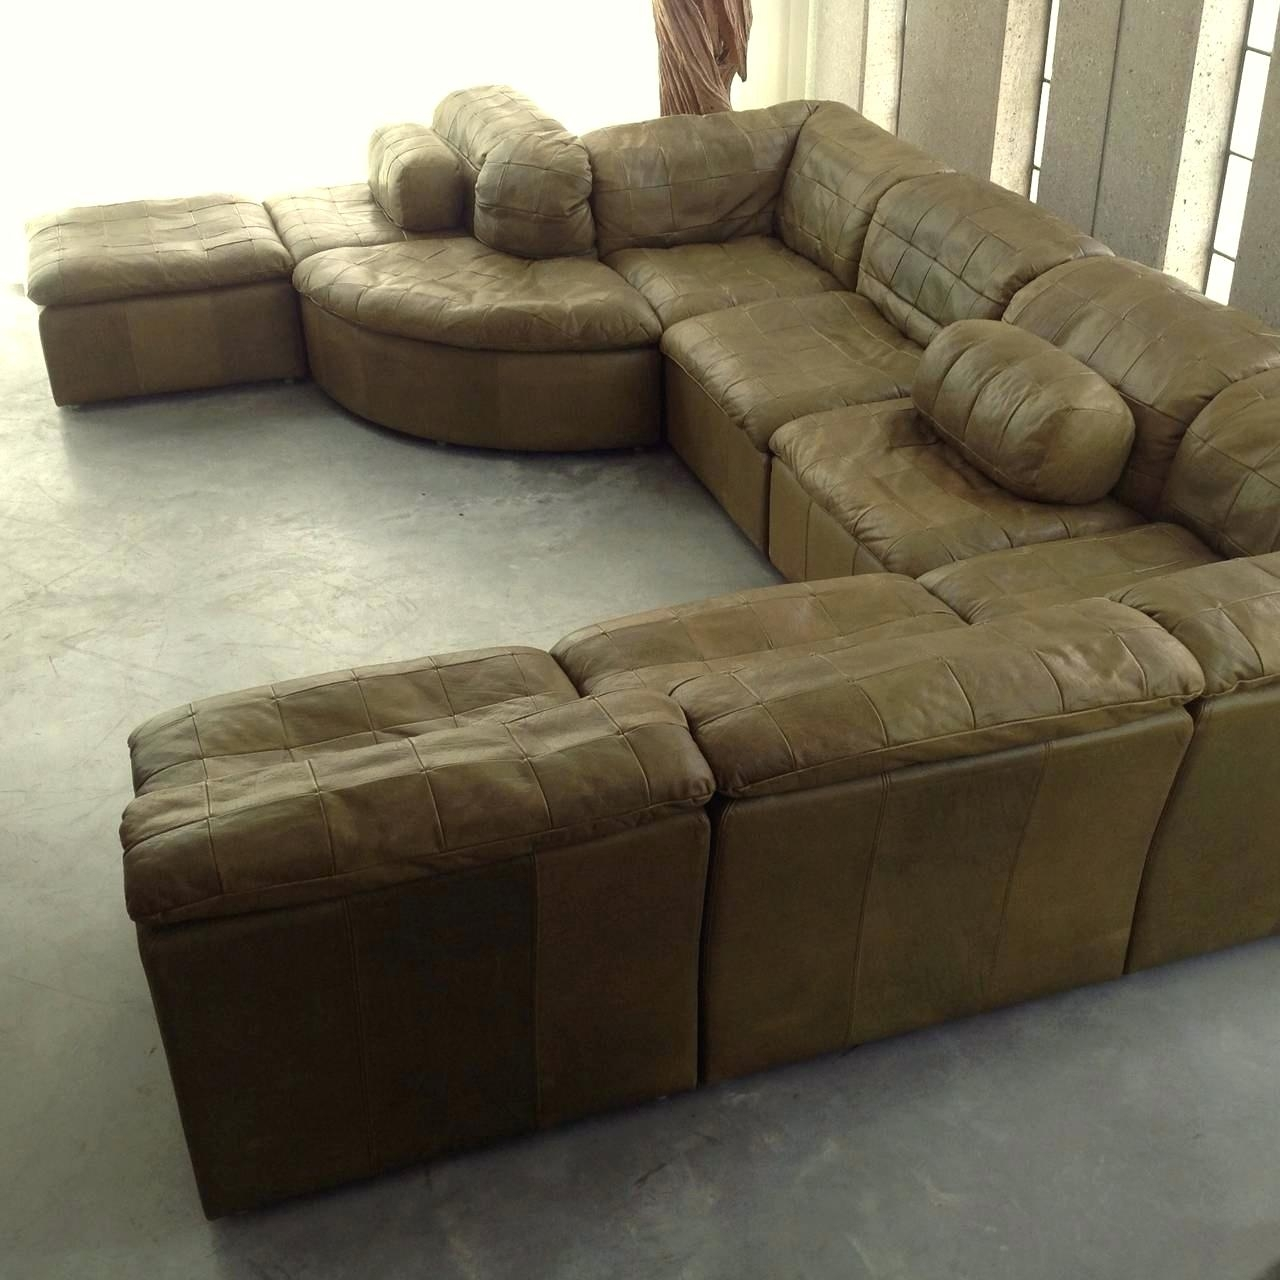 Green Sectional Sas Couches For Sale Sofas Bay Wi Teal Leather For Green Bay Wi Sectional Sofas (Image 8 of 10)